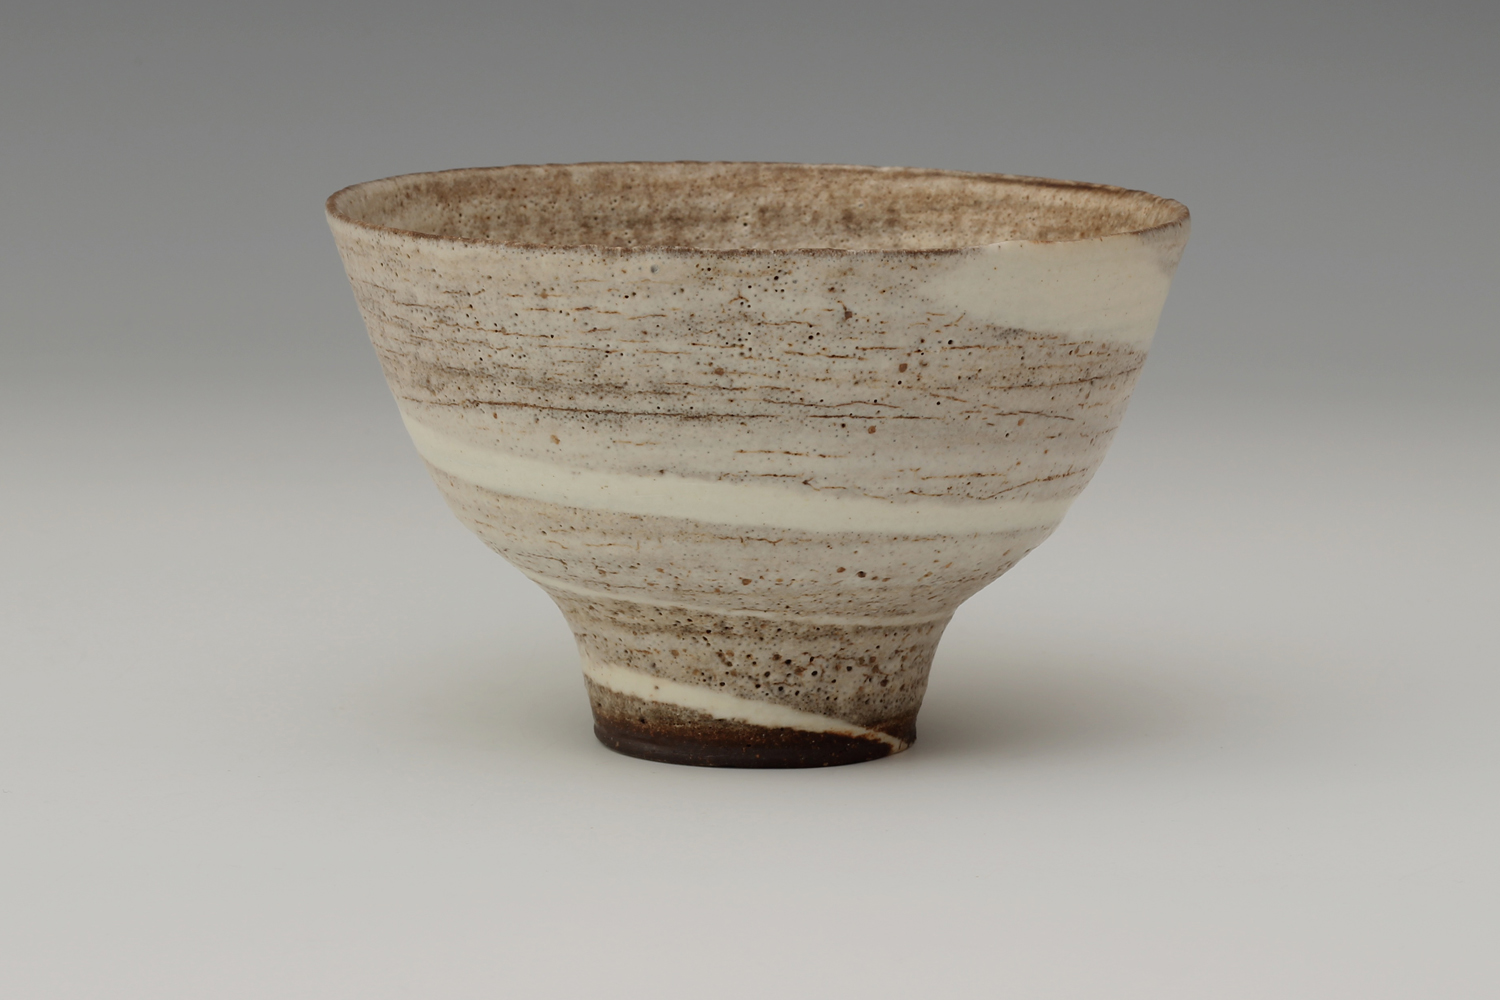 Peter Wills Ceramic Agate-ware Bowl 172